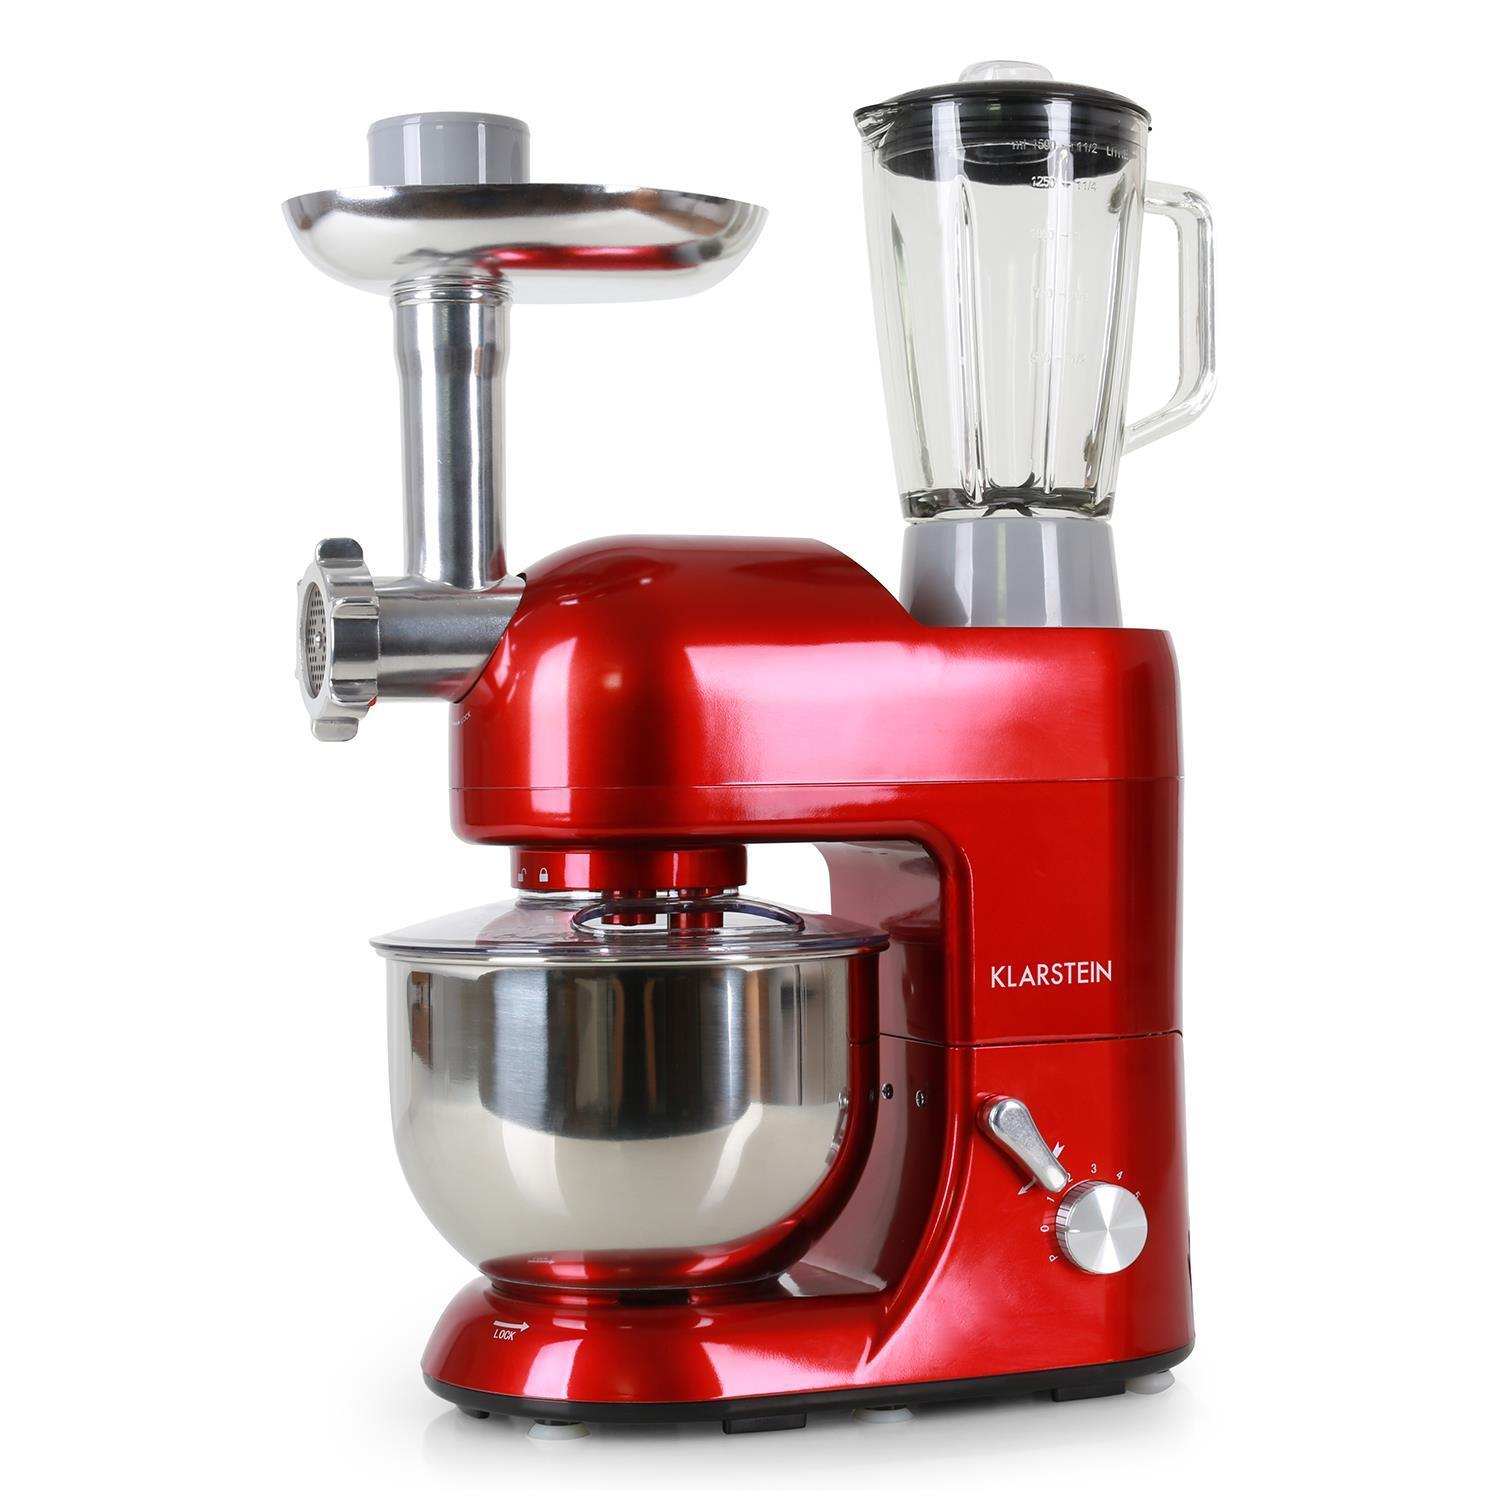 RED TABLE TOP STAND MIXER ELECTRIC BLENDER FOOD PROCESSOR MEAT MINCER 10W NEW